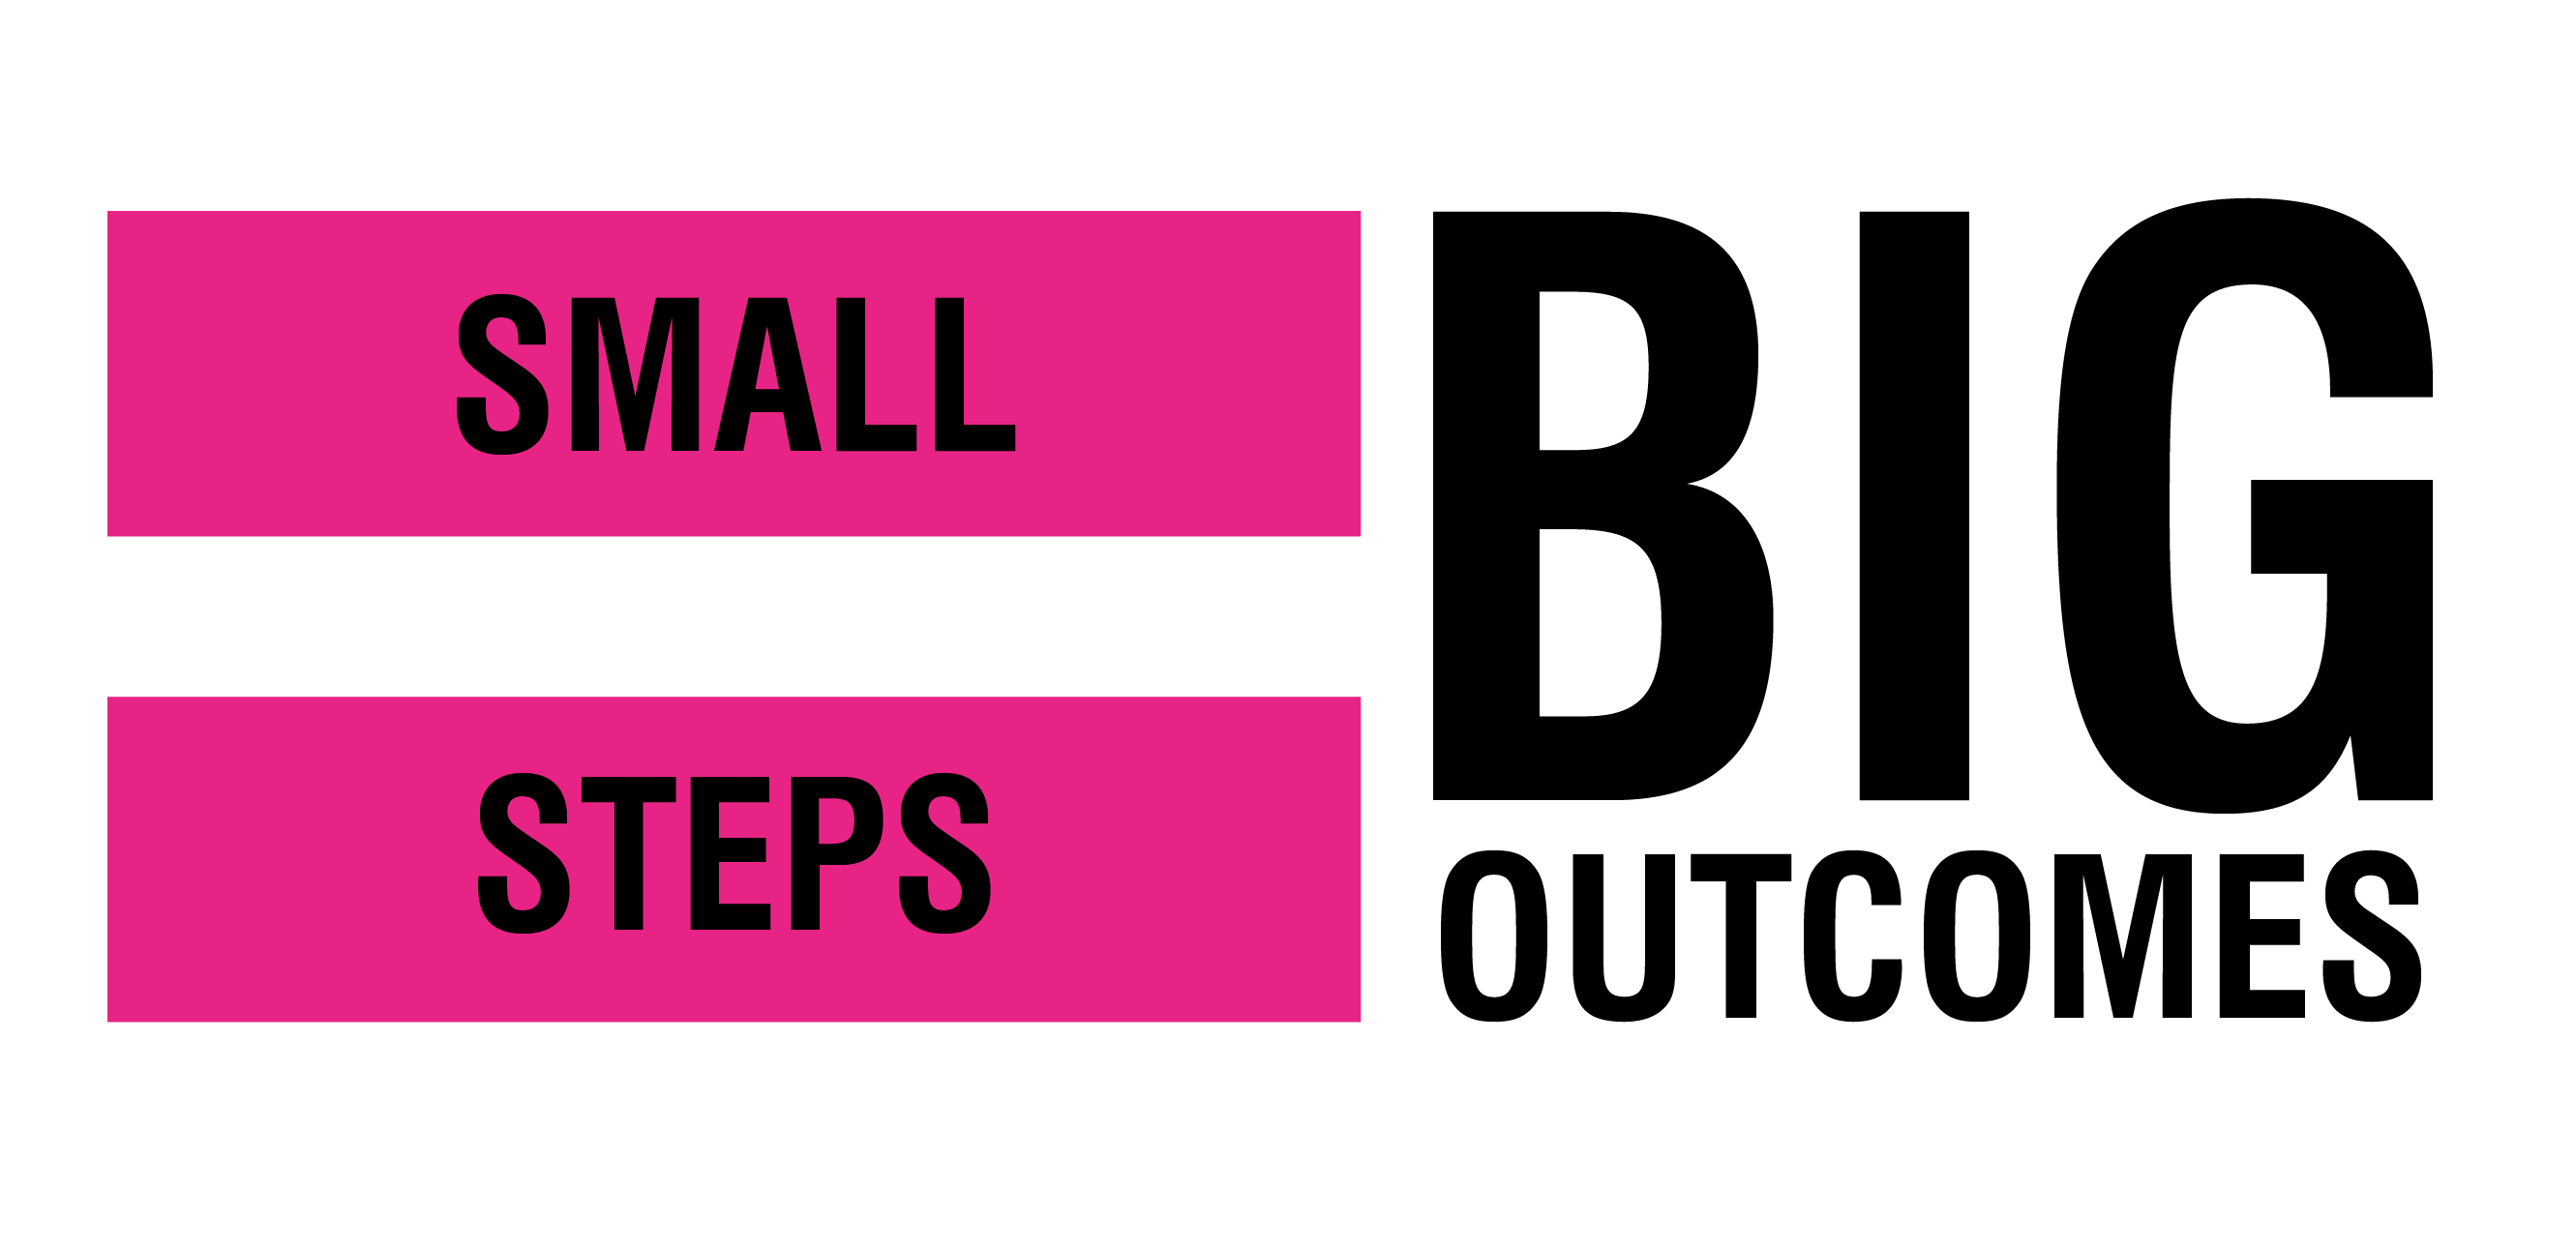 small steps mean big outcomes